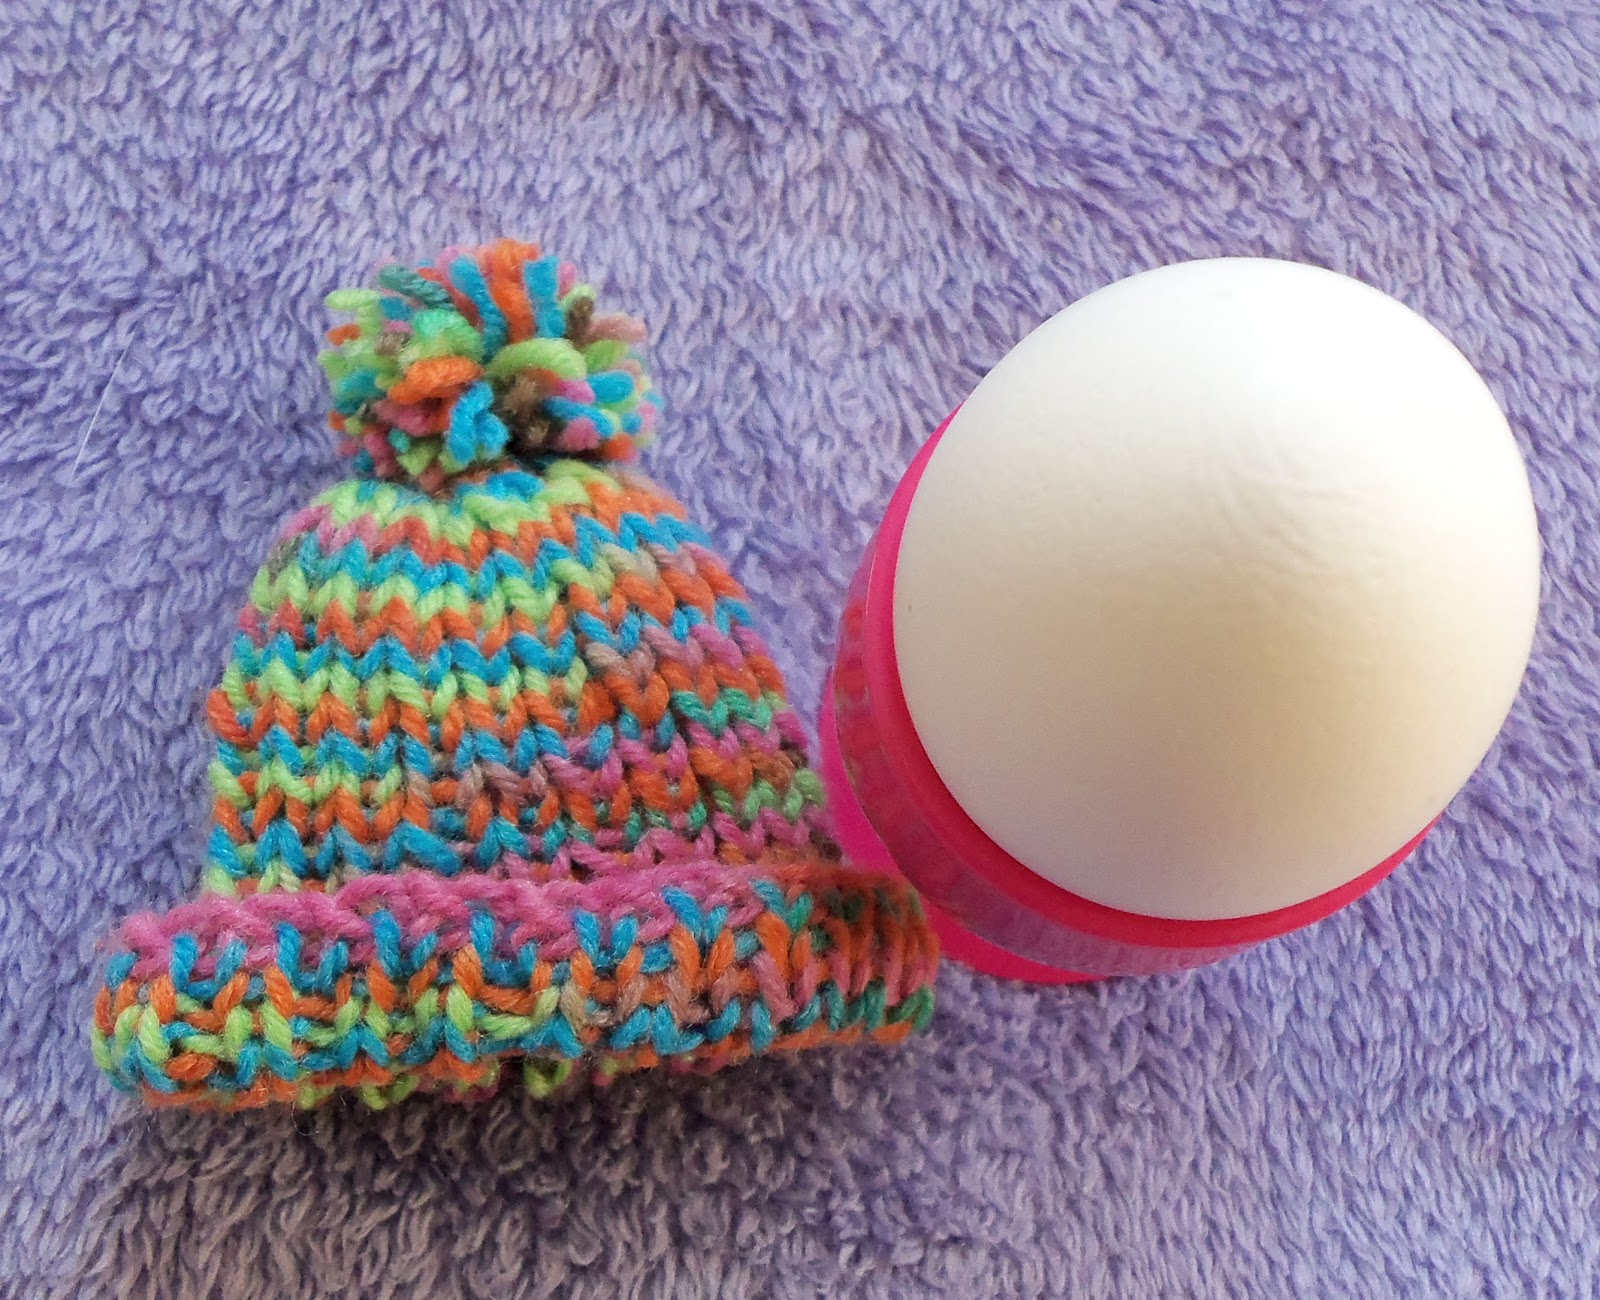 Bevs Country Cottage Blog: Egg cozy anyone?